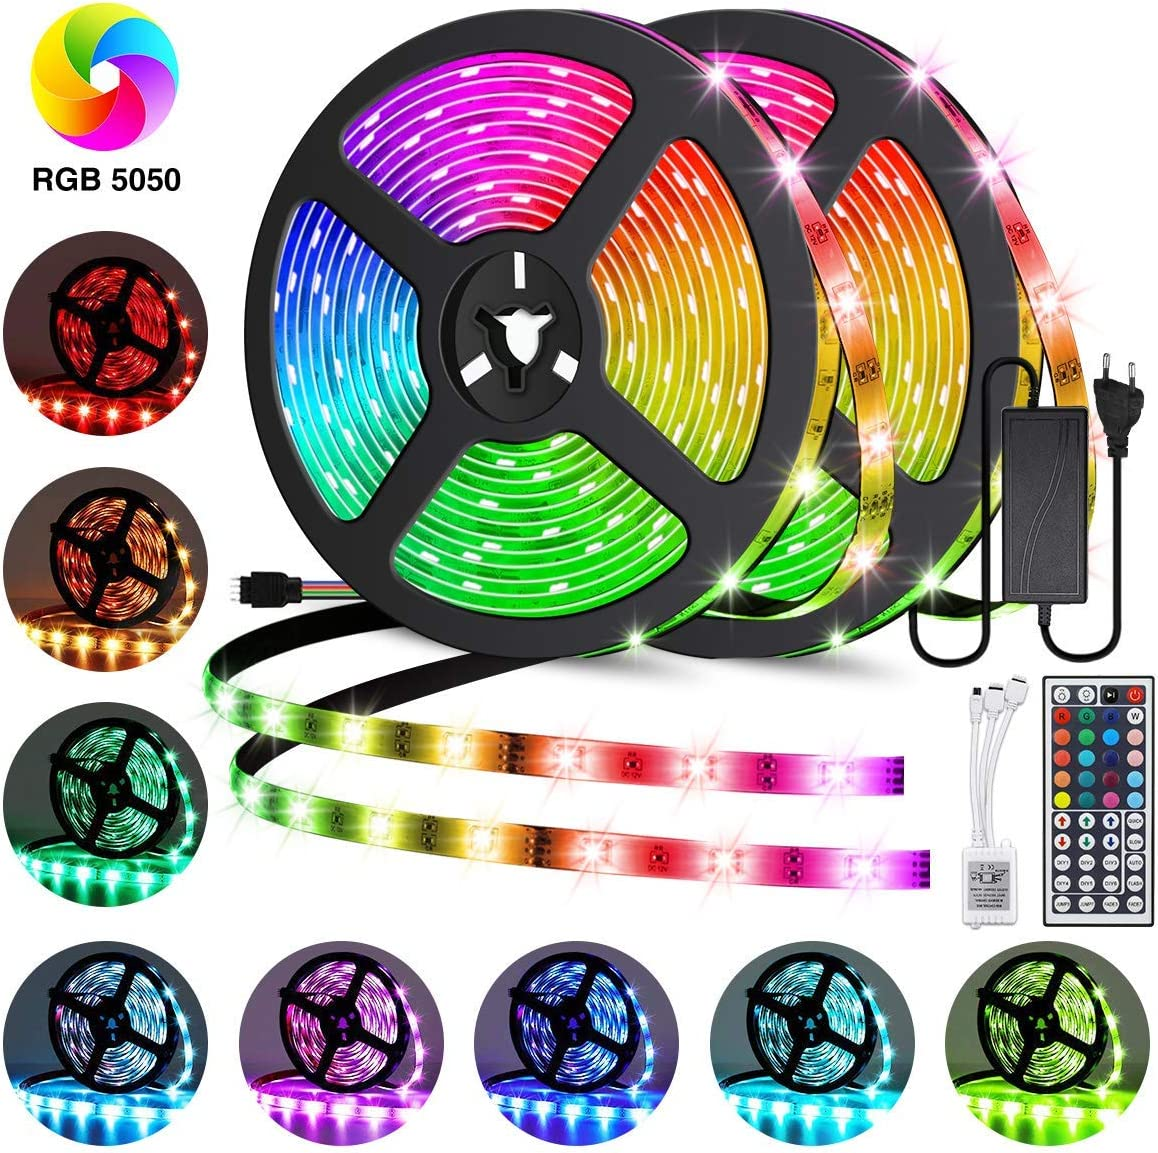 Led Strip Lights 32.8ft, GOADROM IP65 Waterproof Flexible Led Lights Color Changing 5050 RGB 300 LEDs Light Strips Kit with 44 Keys IR Remote Controller and 12V Power Supply for Home, Bedroom, Kitchen